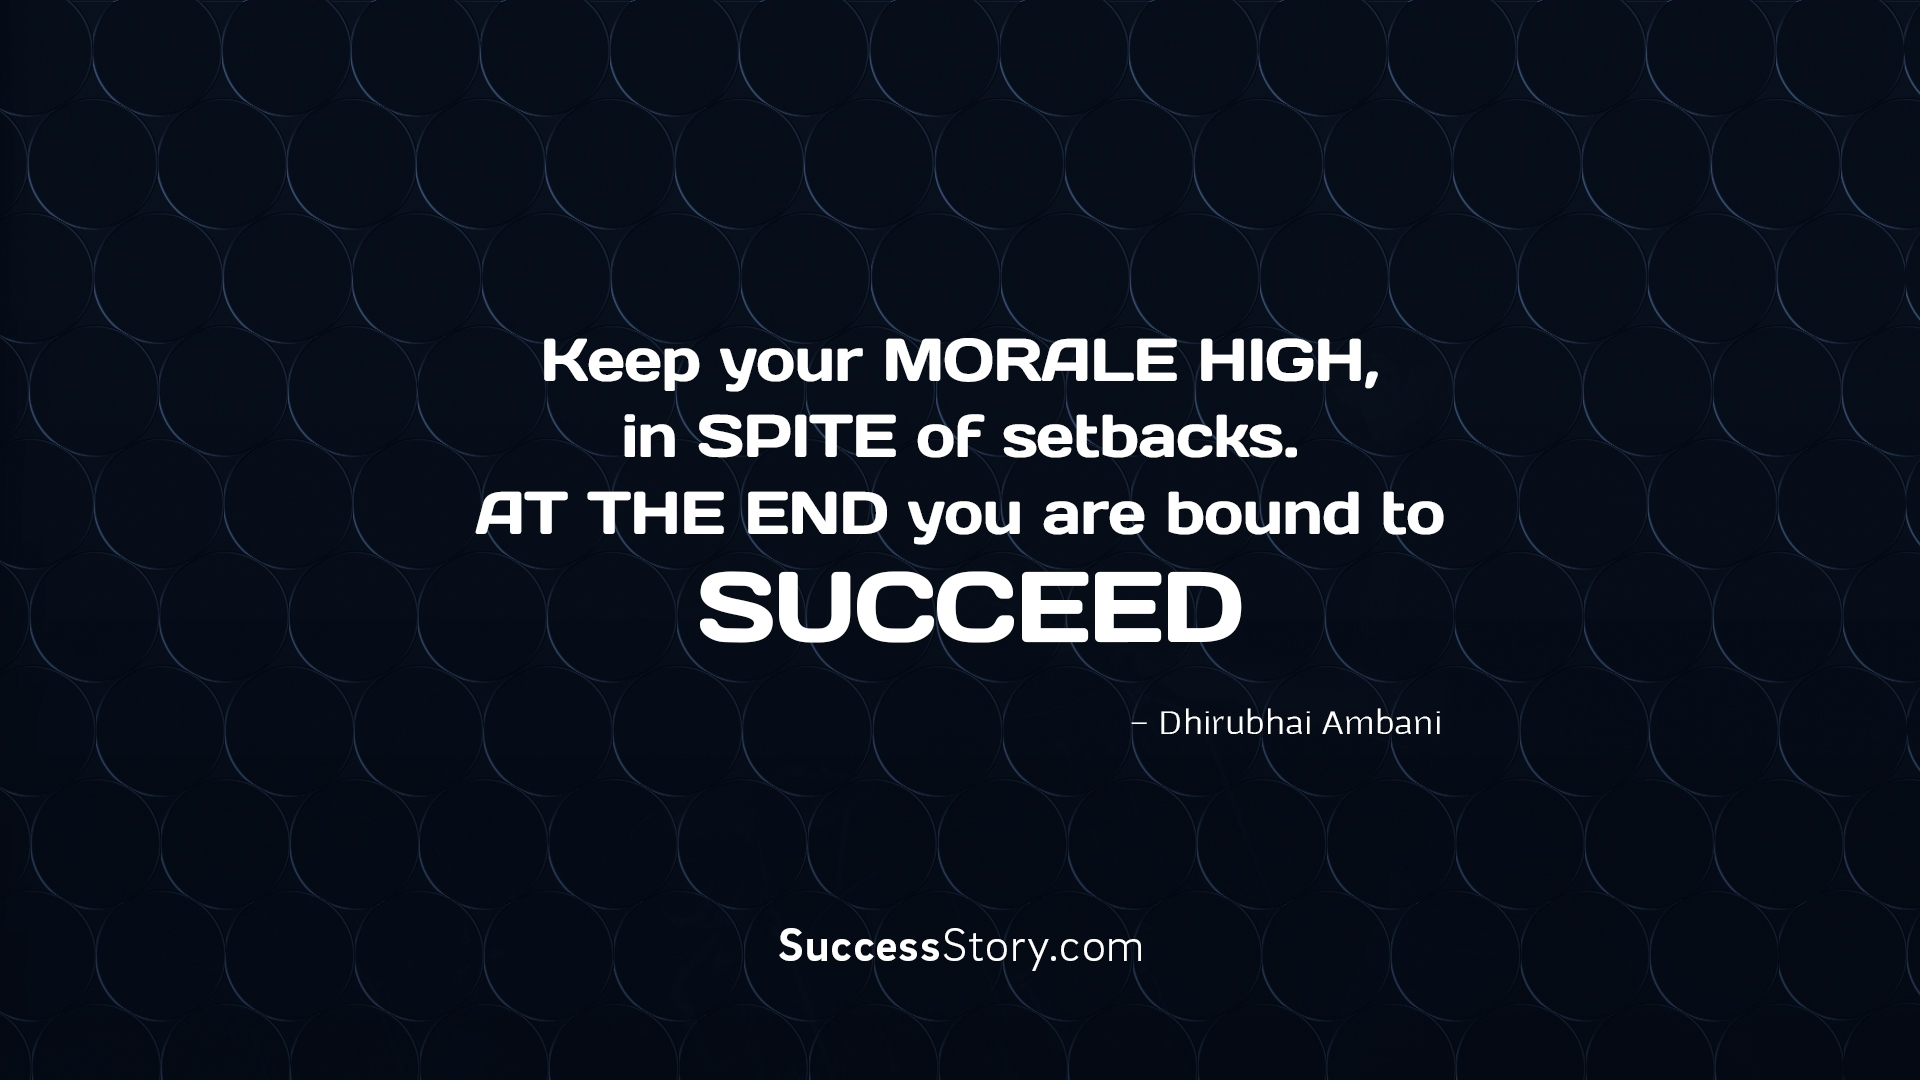 Keep your morale